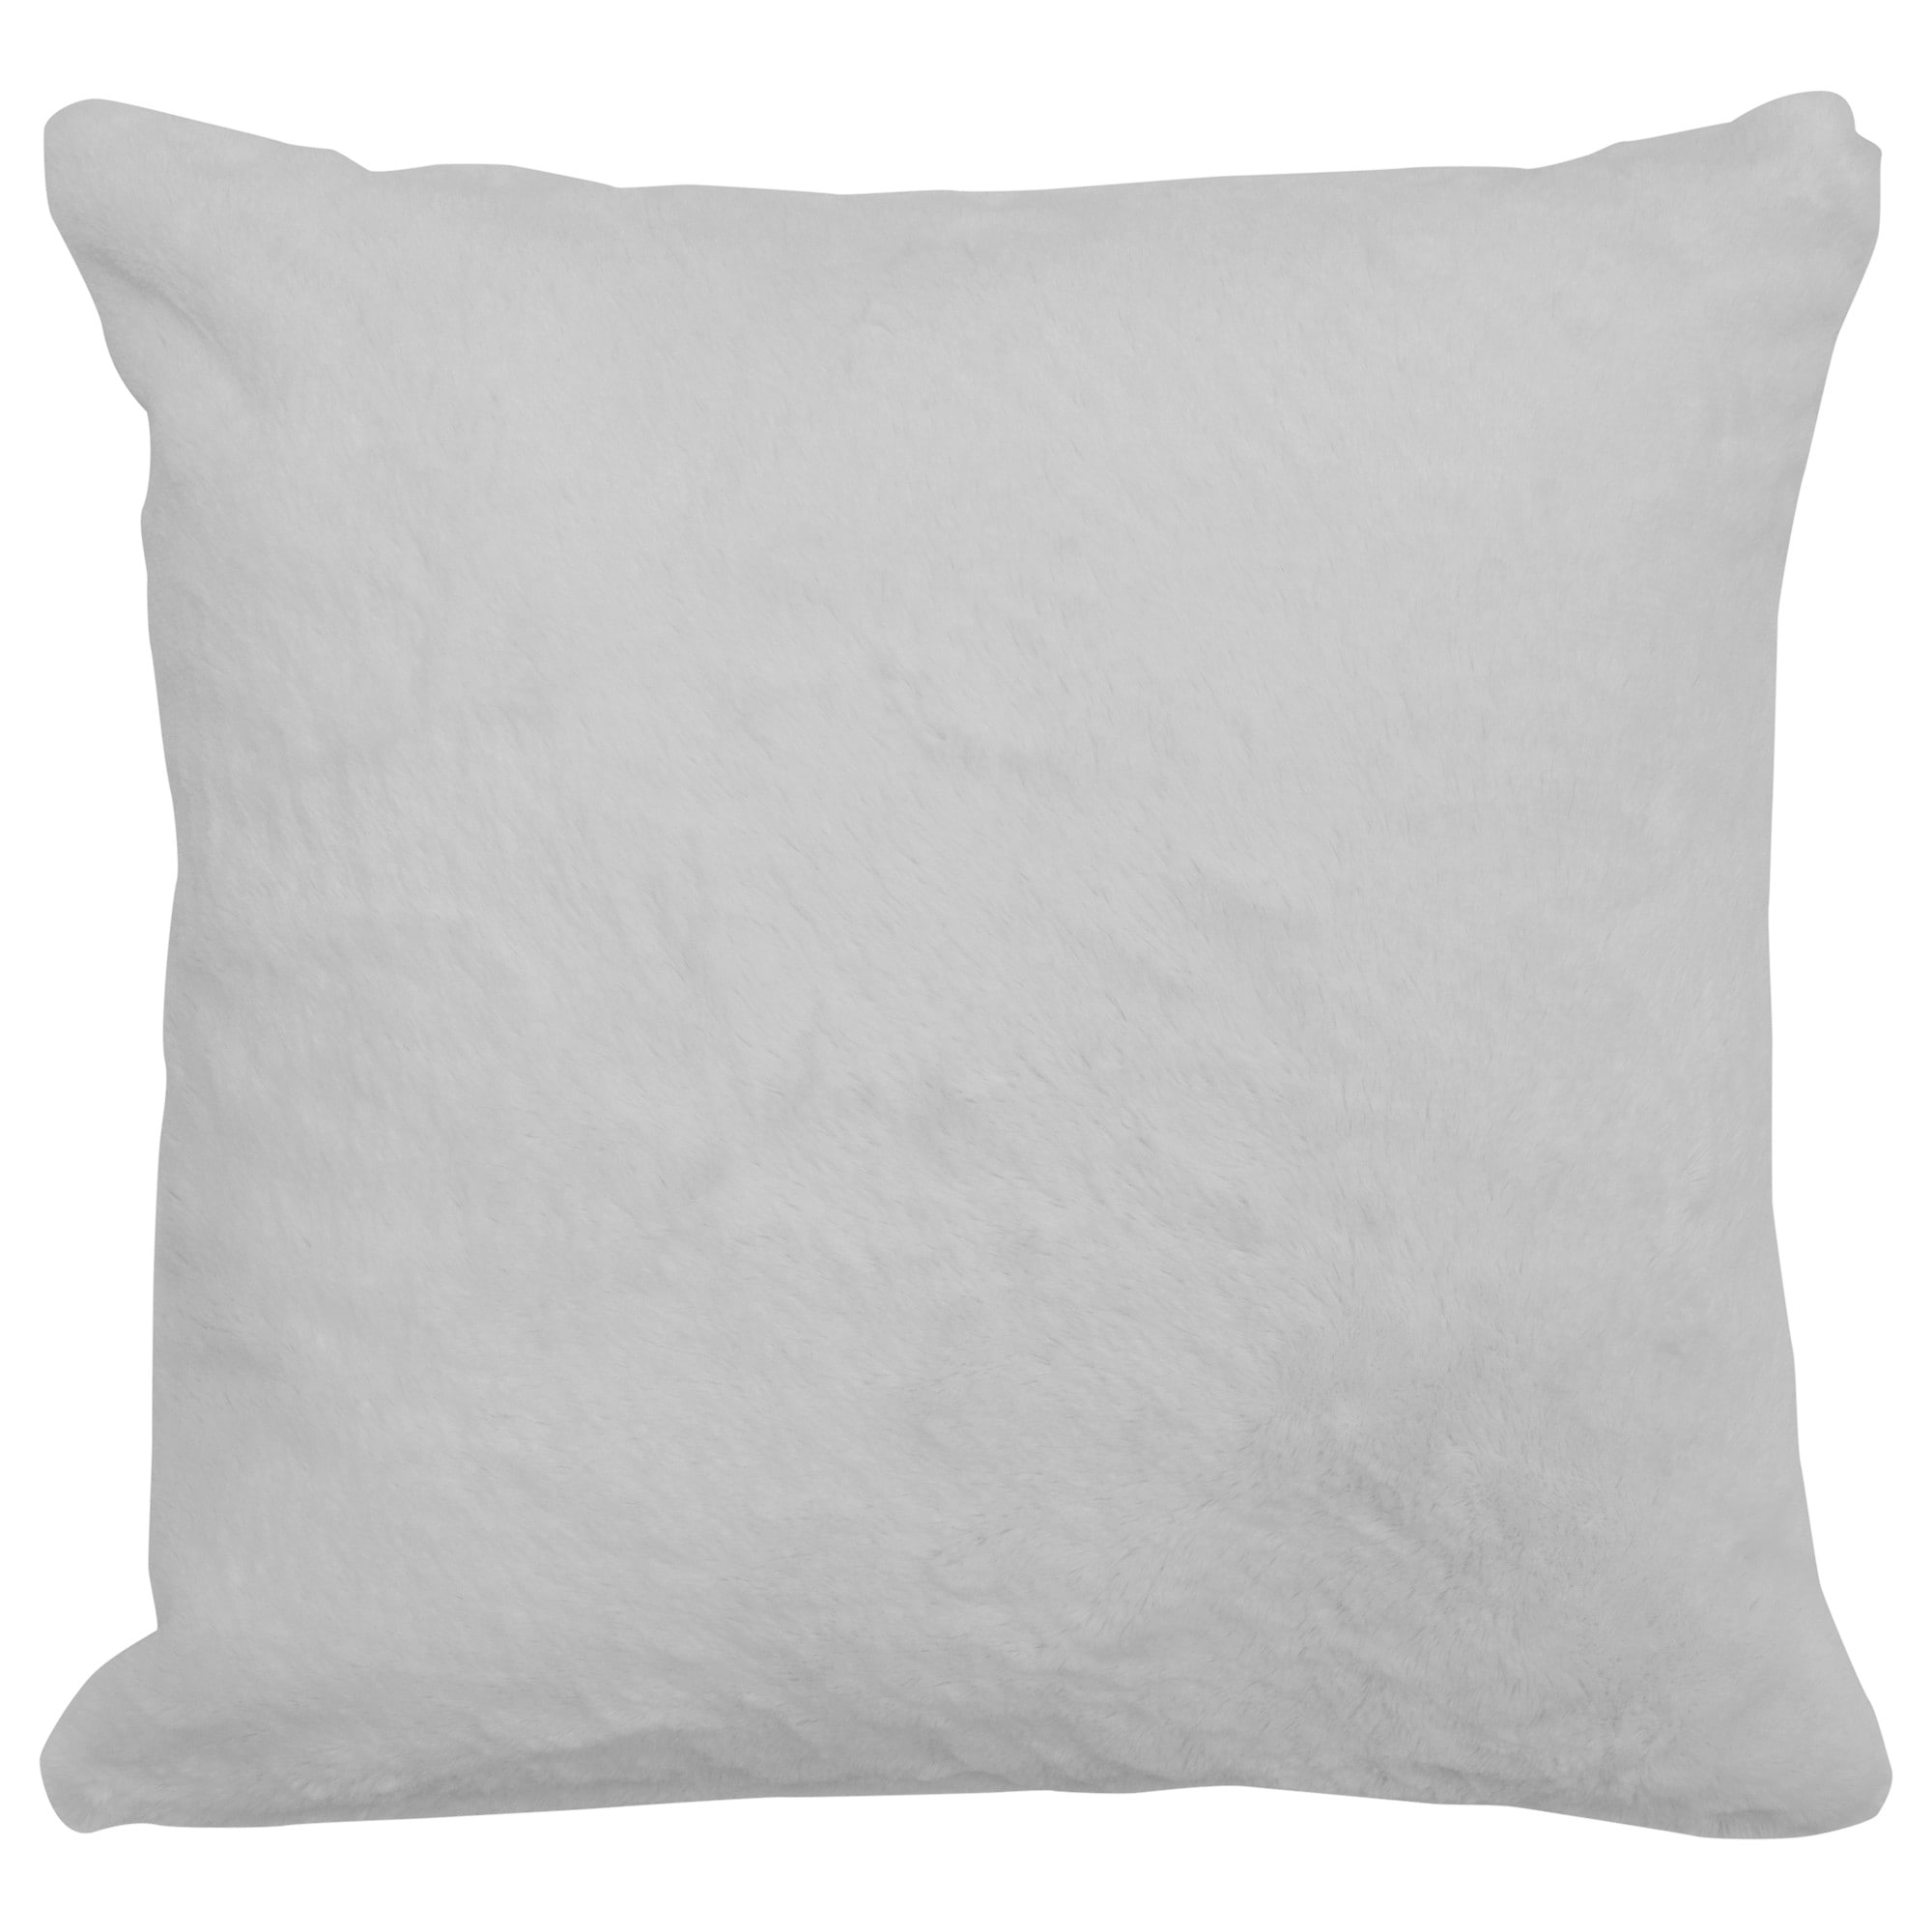 and white throw pillows tuscany linen white 17x17 throw pillow from pillow d 233 cor. Black Bedroom Furniture Sets. Home Design Ideas